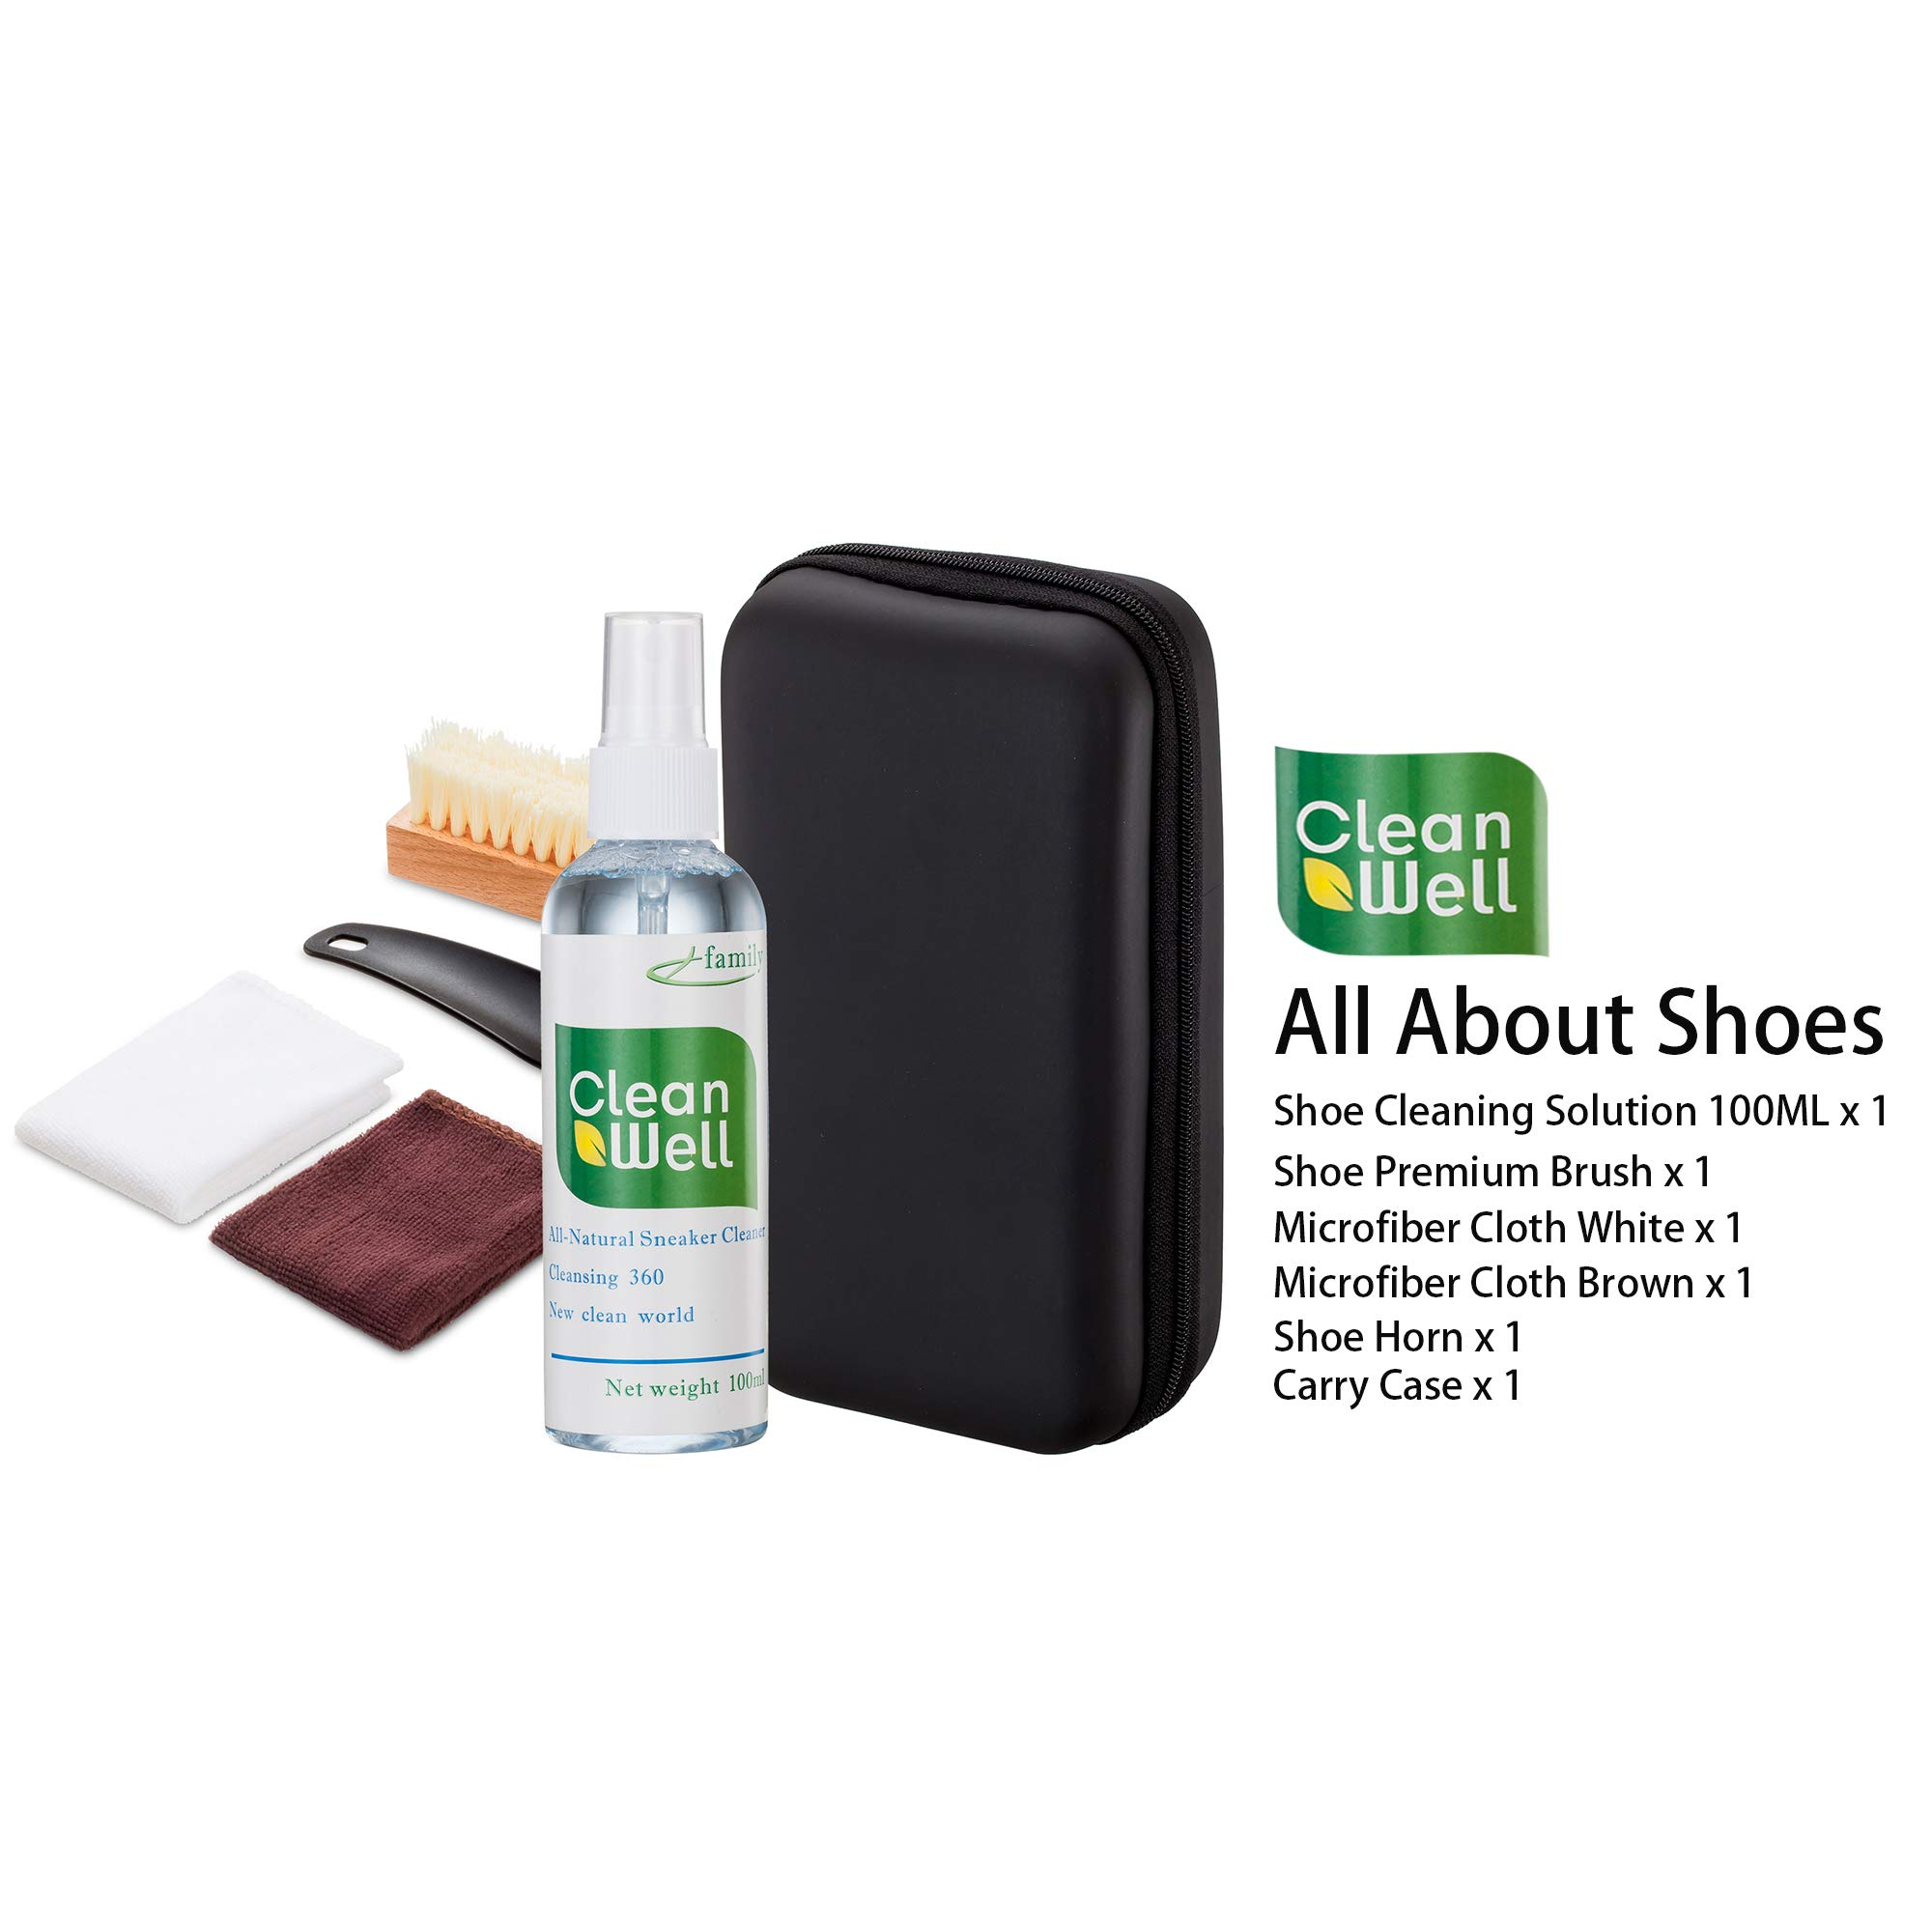 Shoe Cleaner Kit with PU Leather Sleek Elegant Case, 5-Piece Travel Shoe Brush kit and Solution